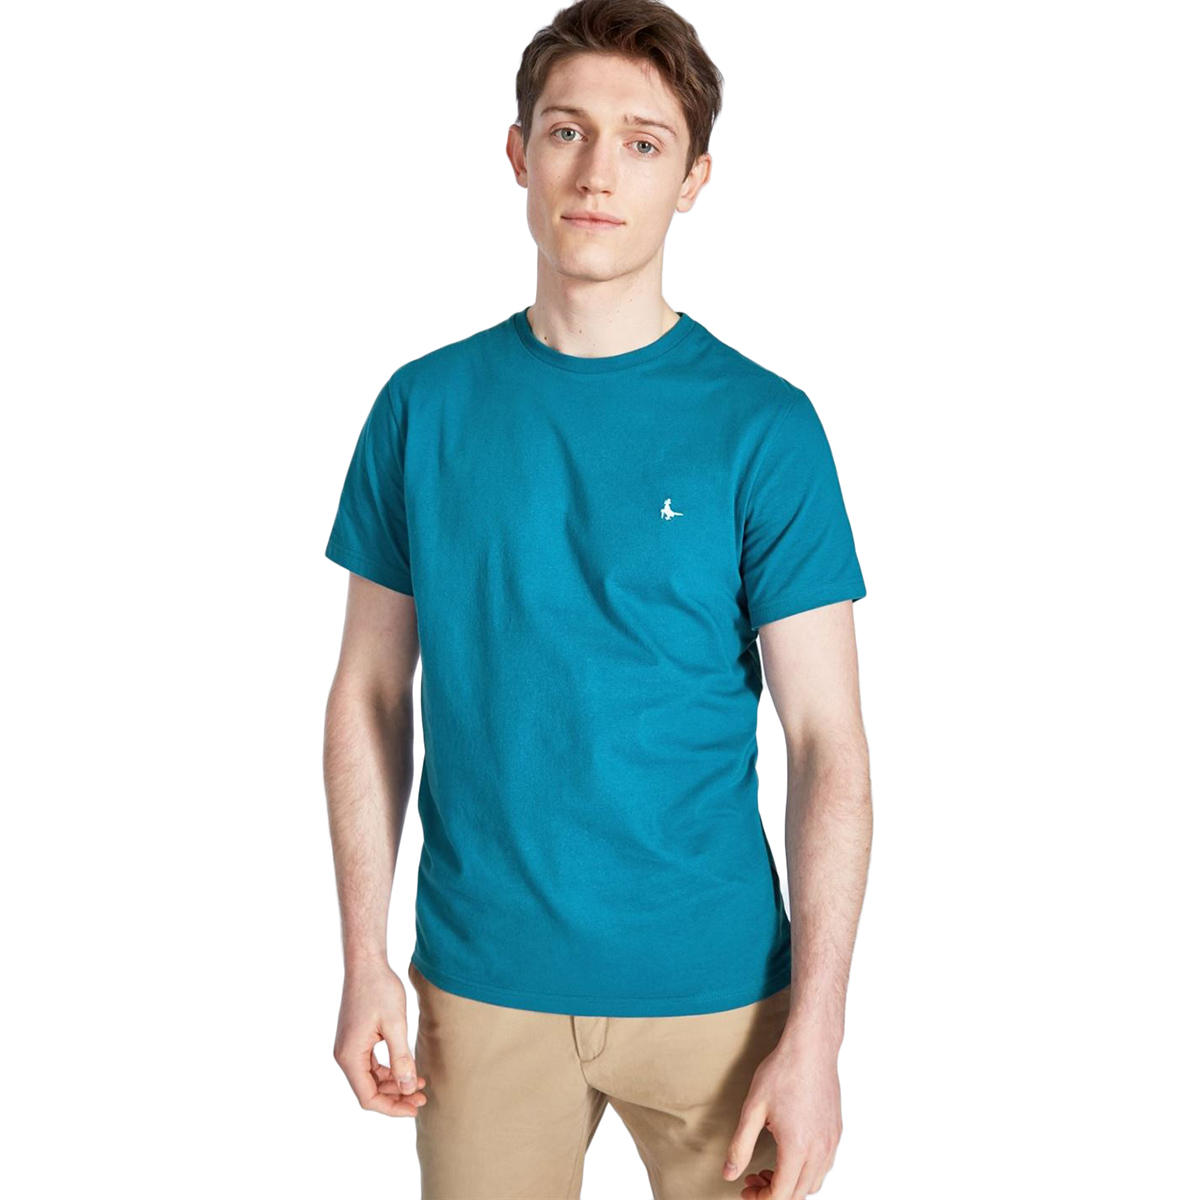 Jack Wills Men's Sandleford Short-Sleeve Tee - Blue, XS